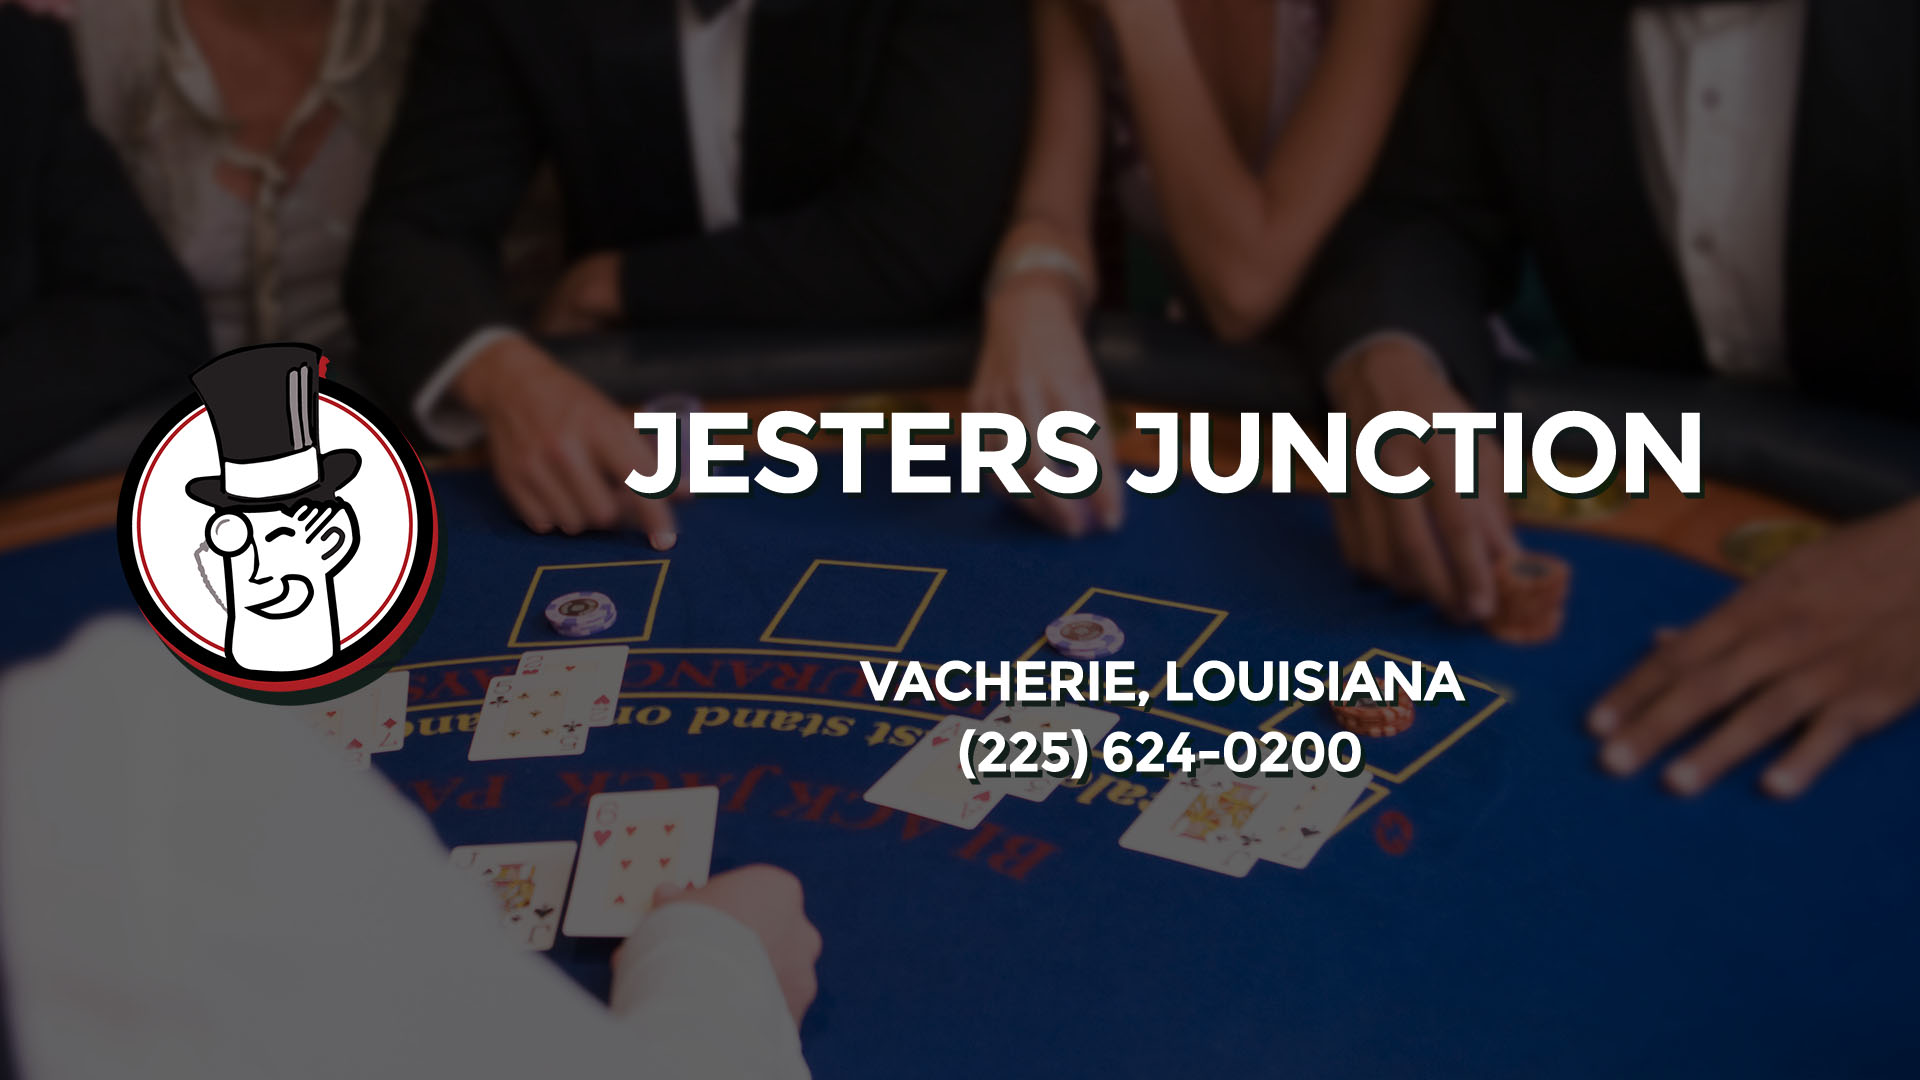 JESTERS JUNCTION VACHERIE LA